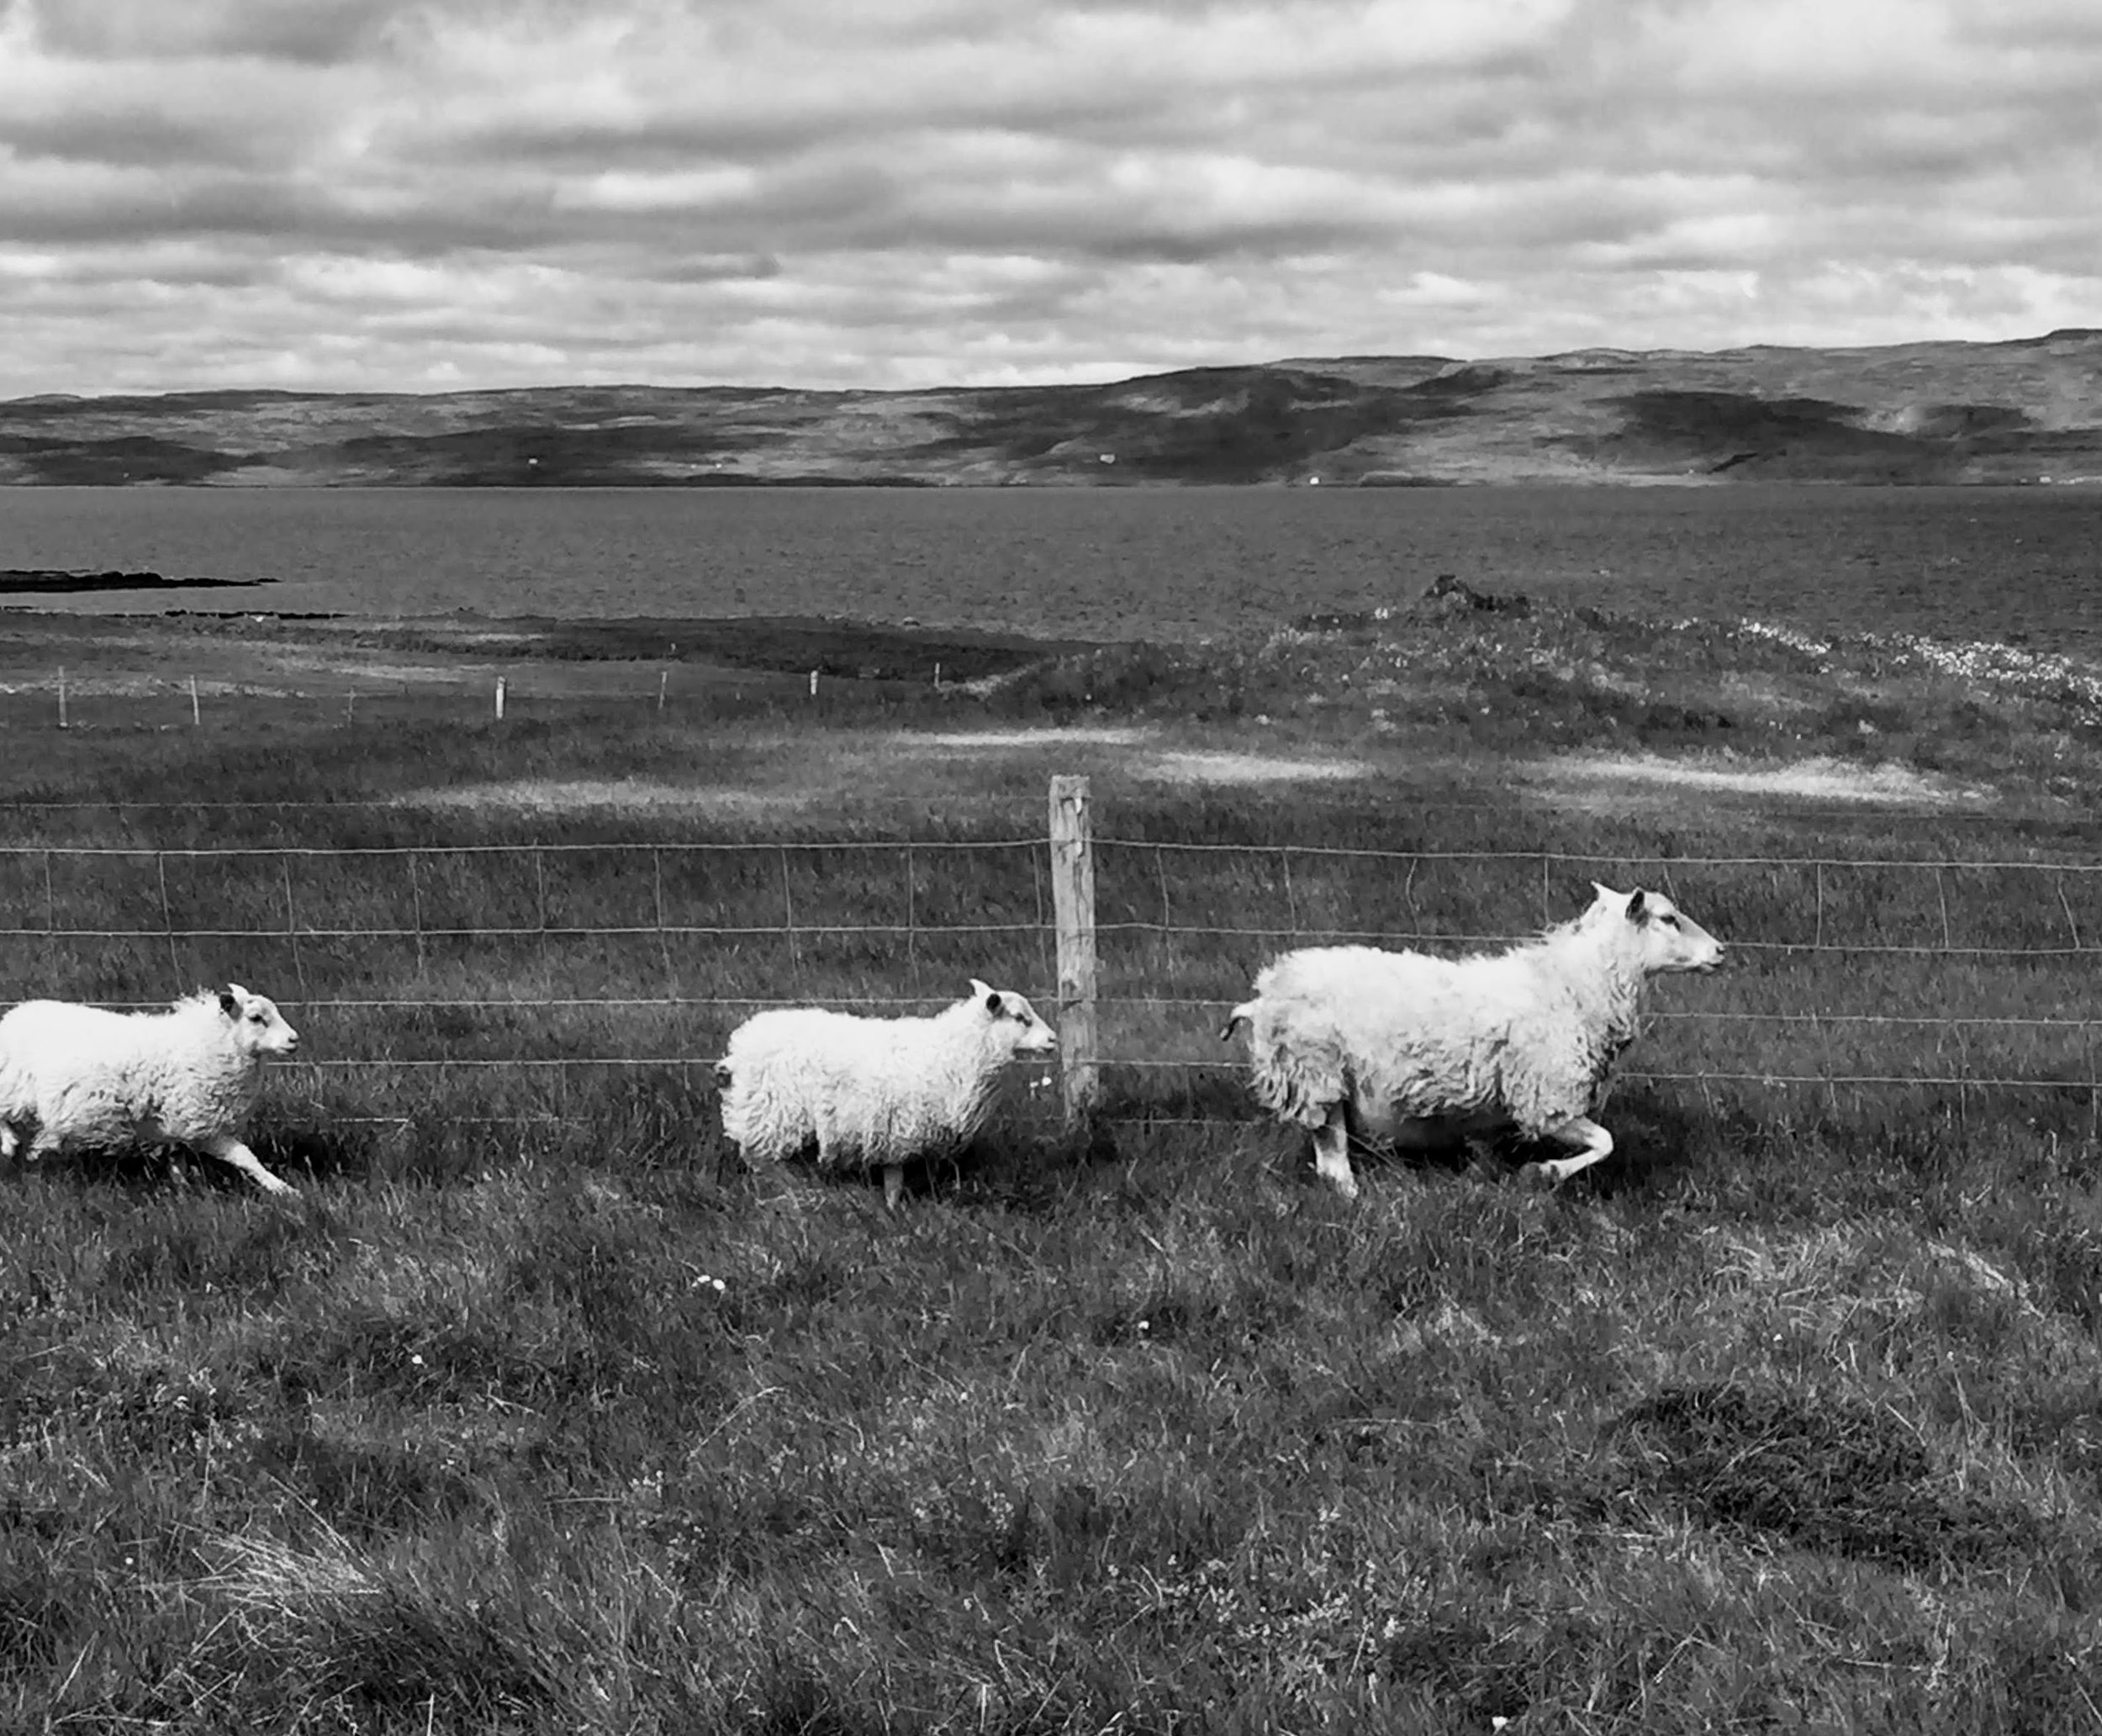 sheep-black and white.JPG